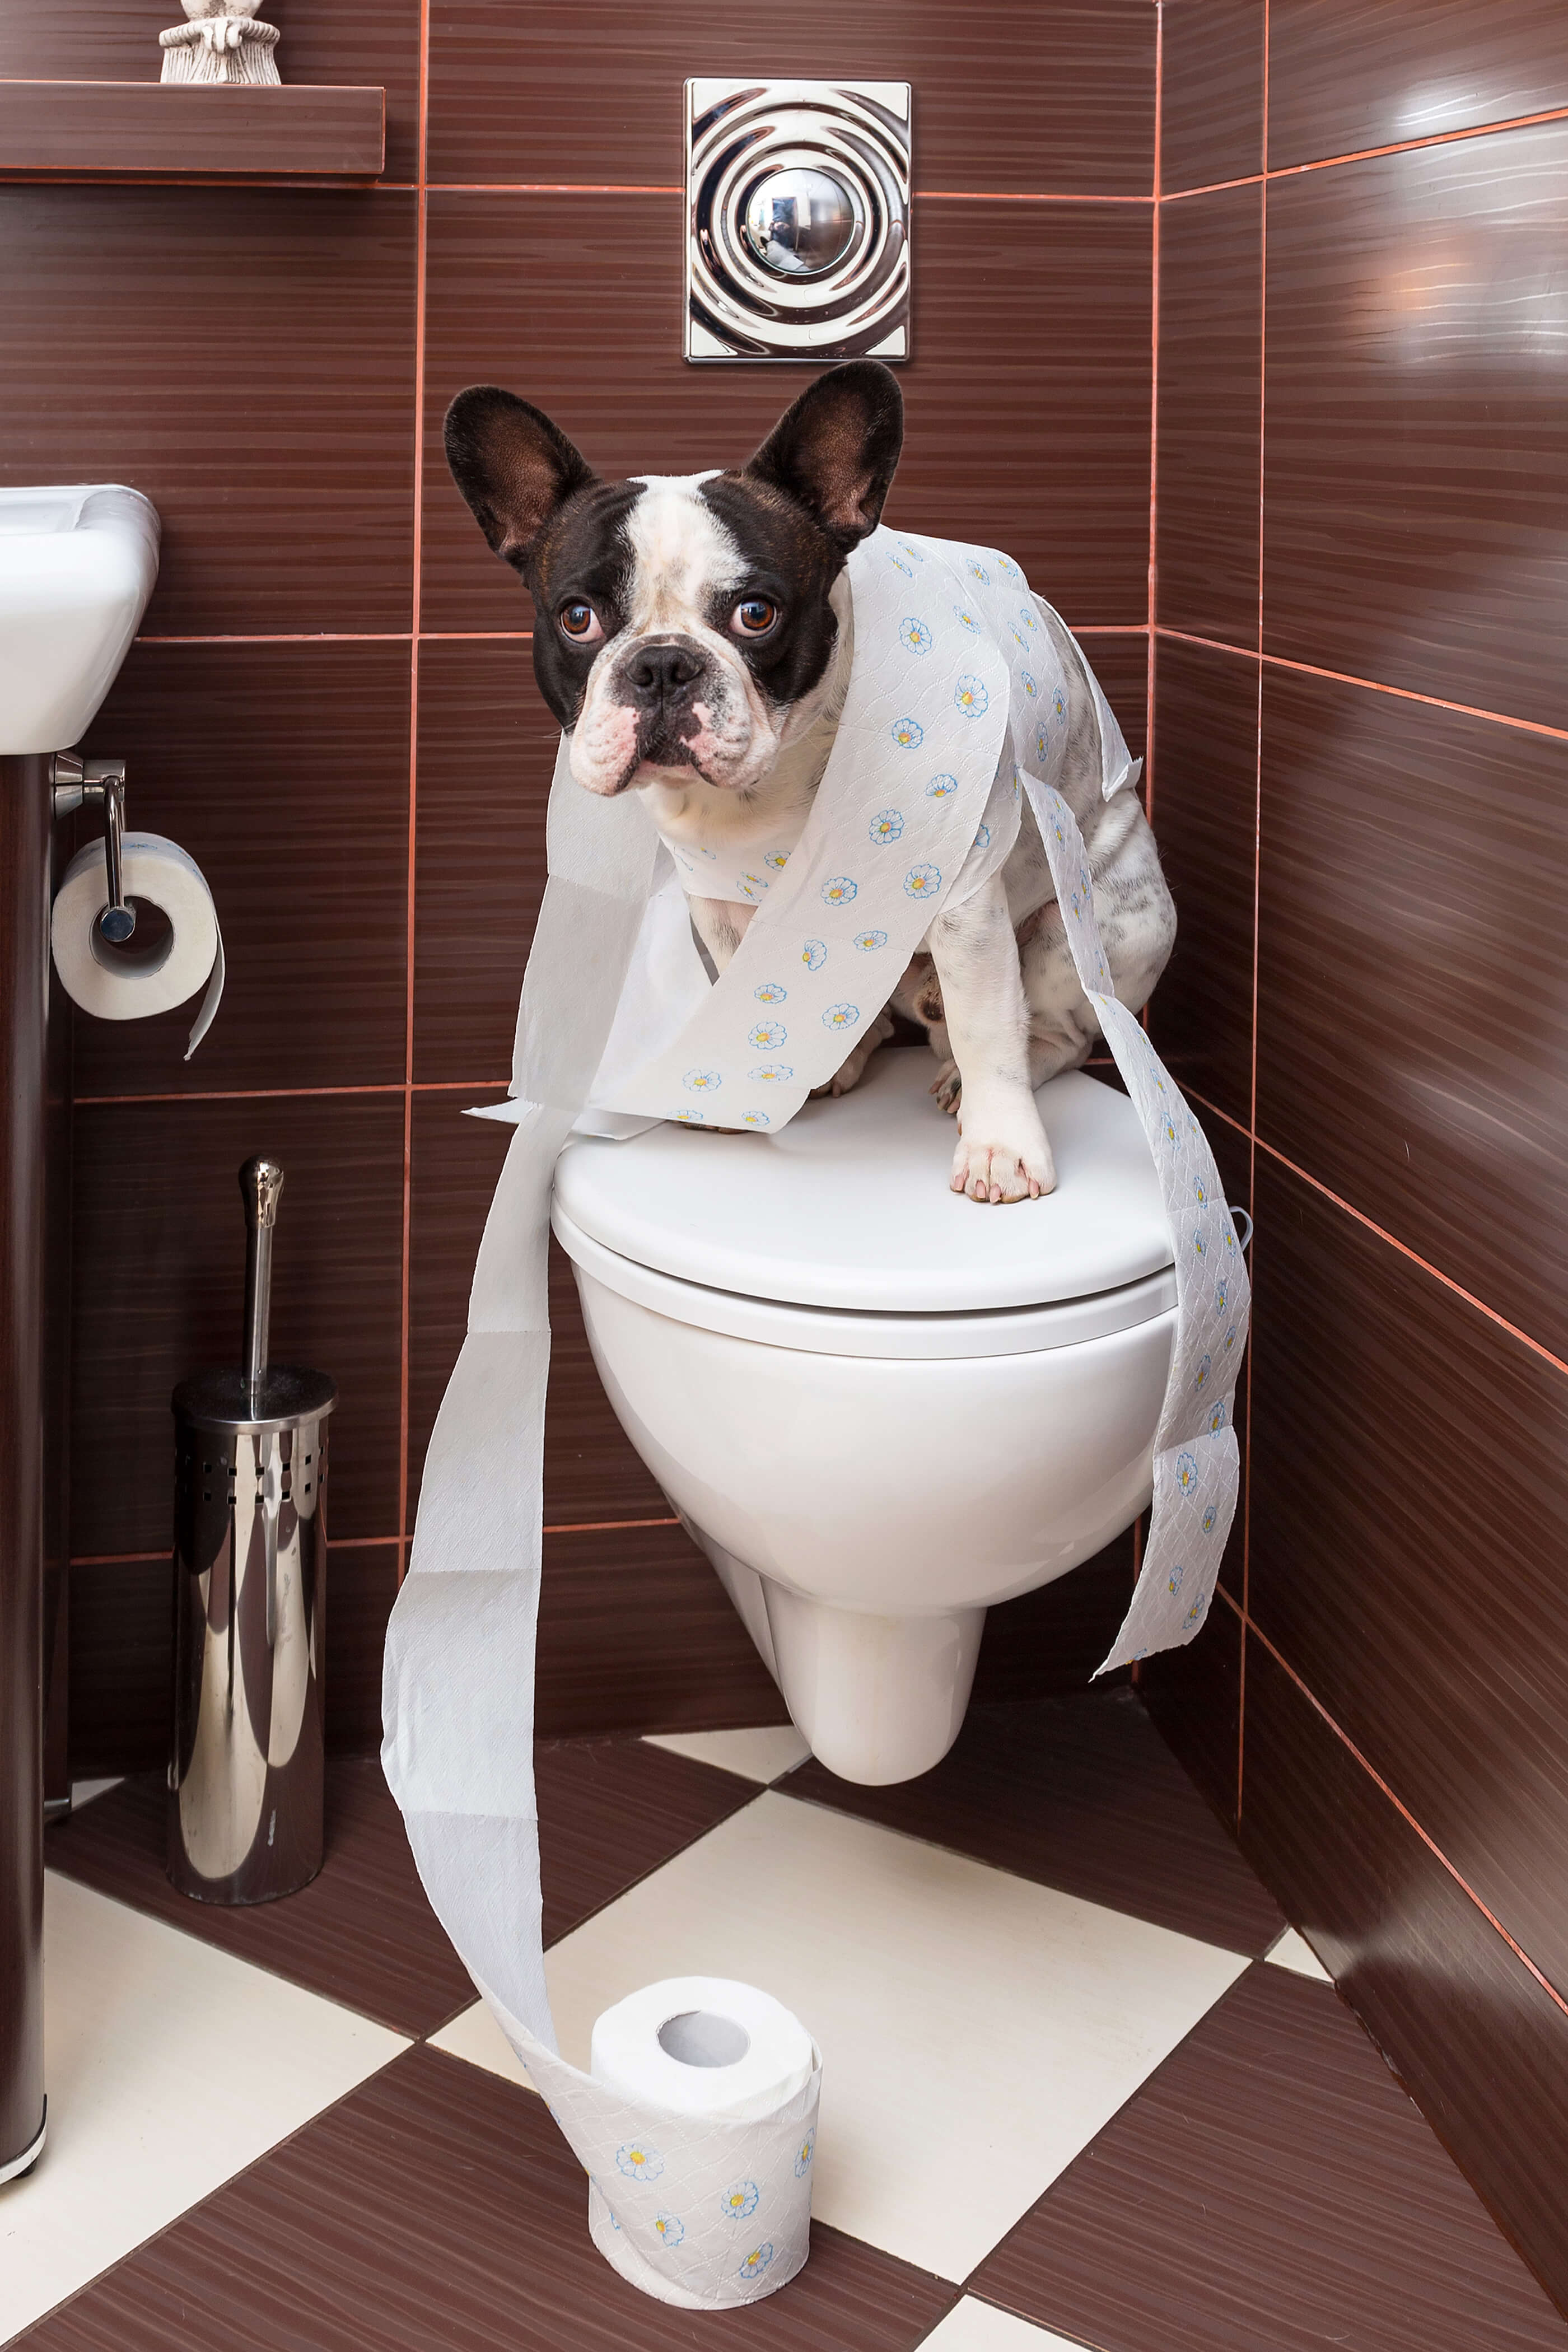 dog with spread toilet paper in bathroom